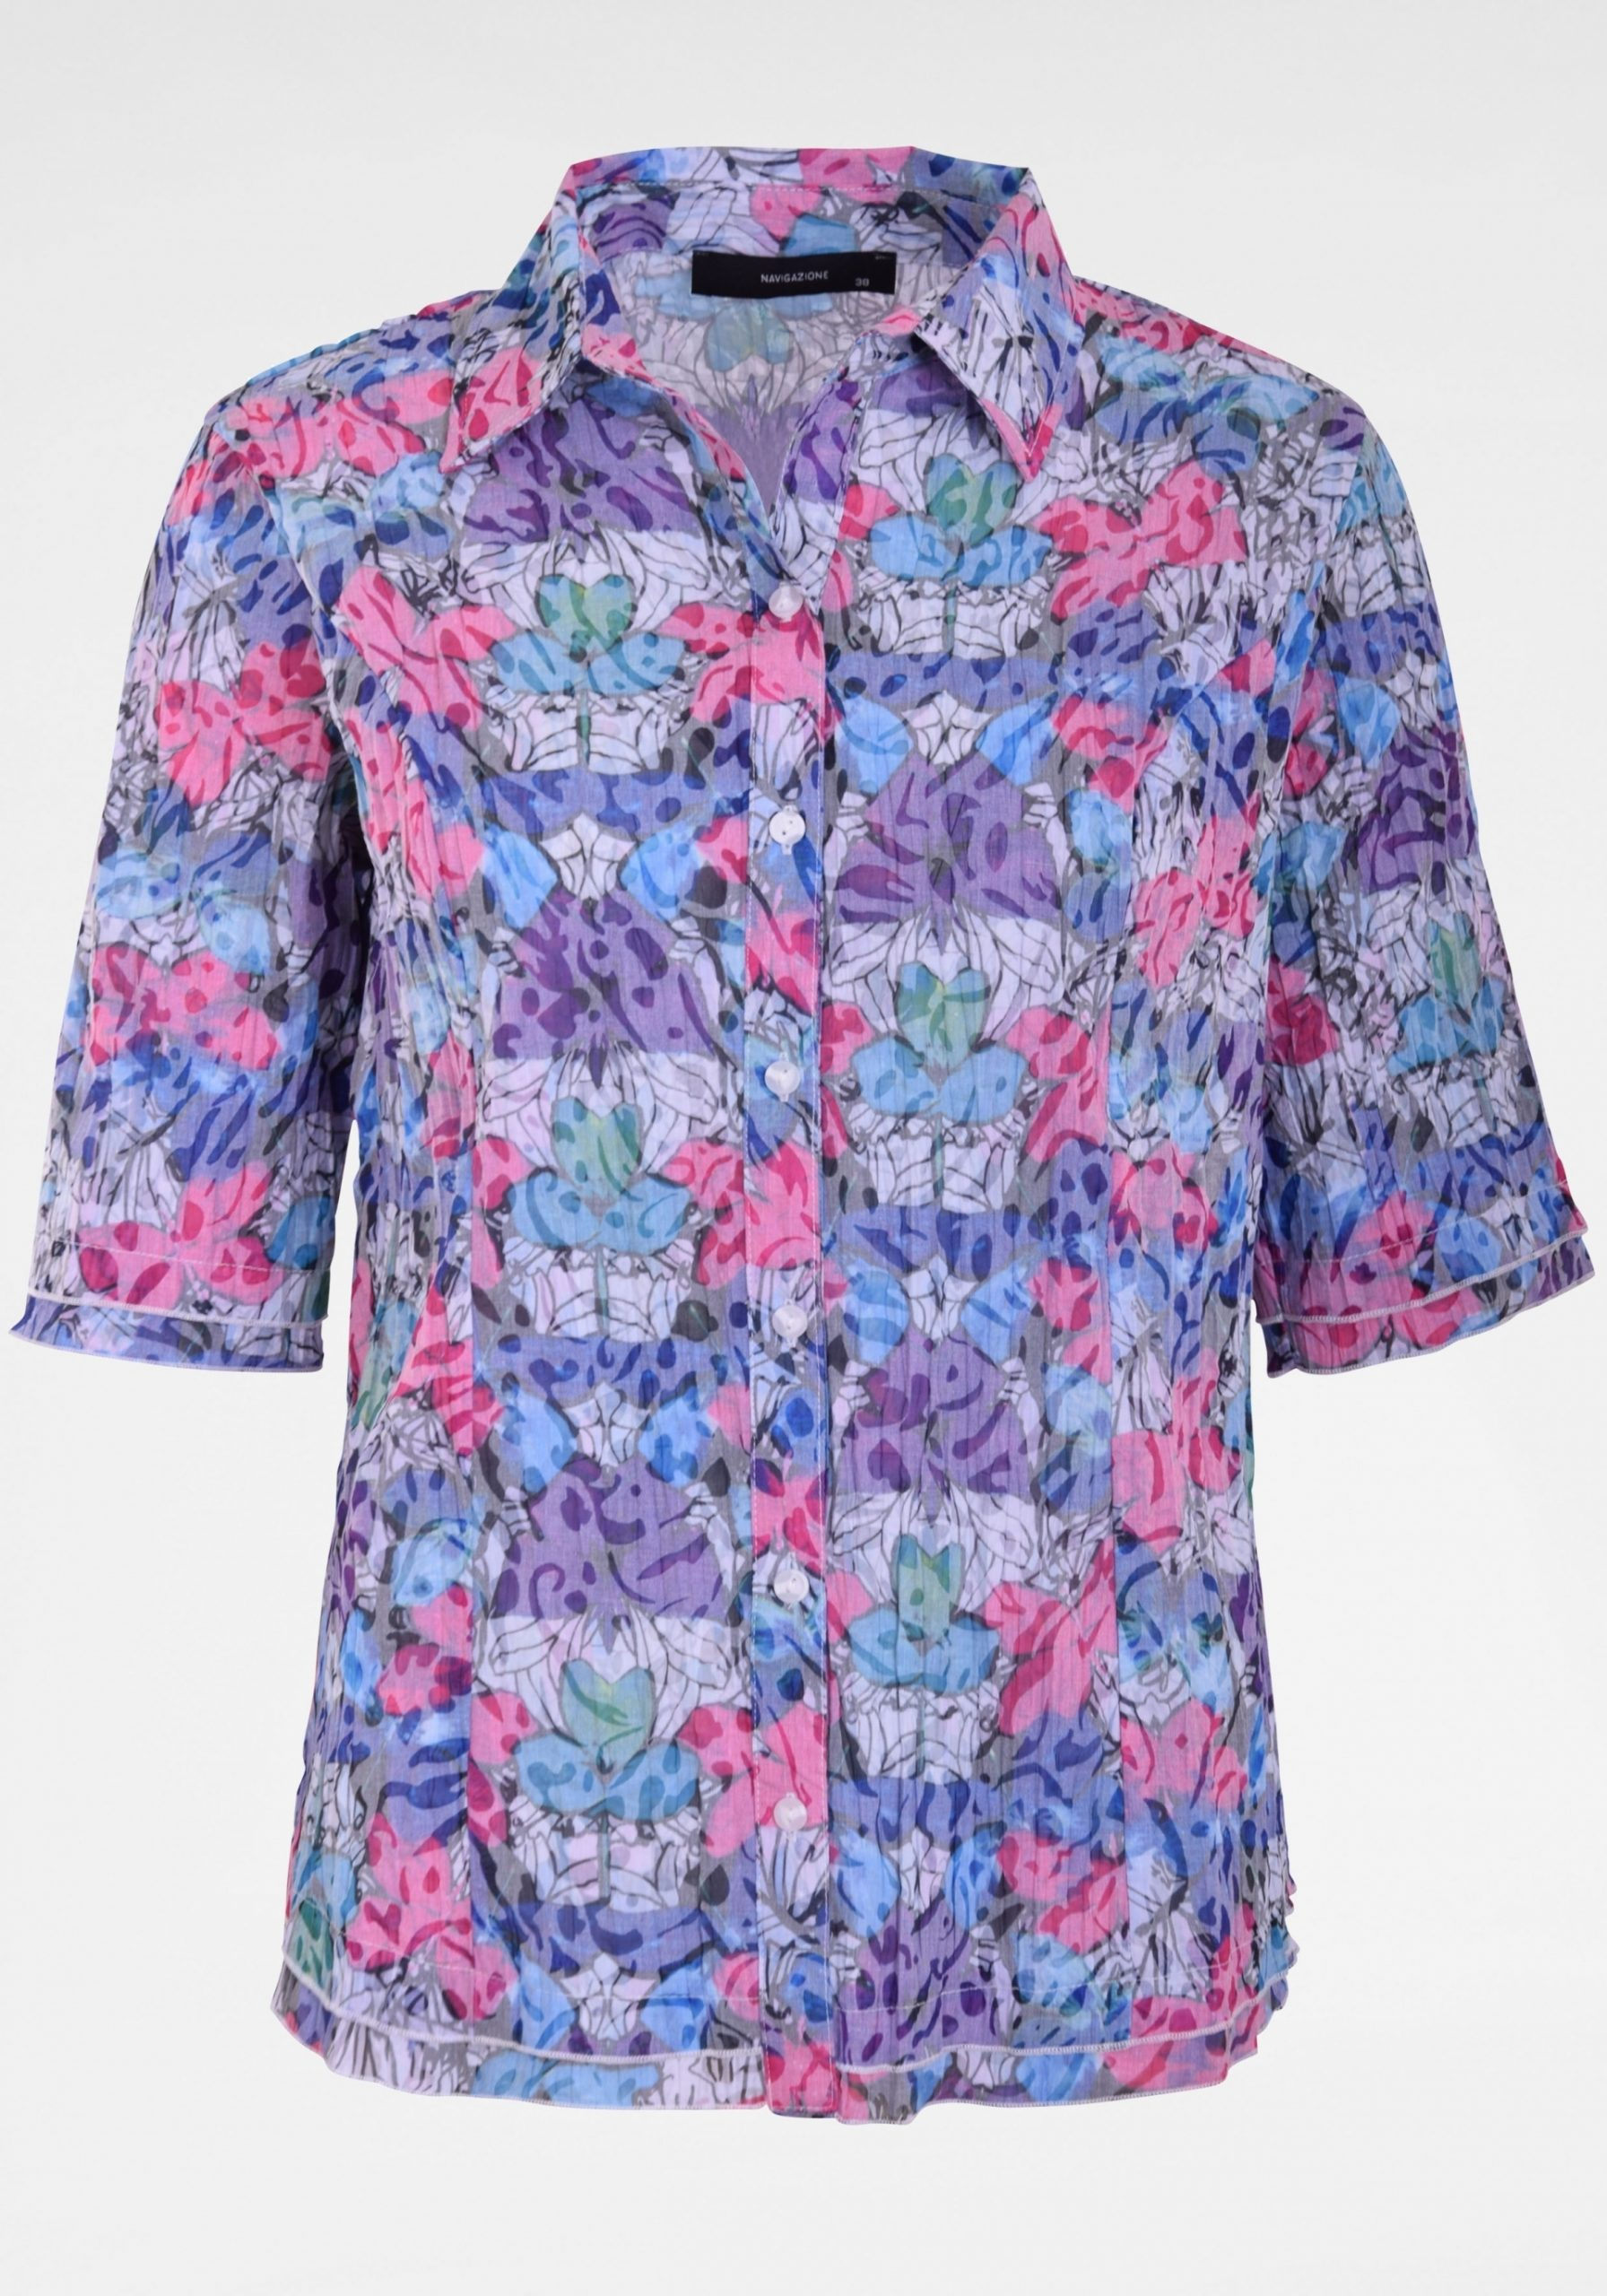 Damen Multicolour Crushbluse